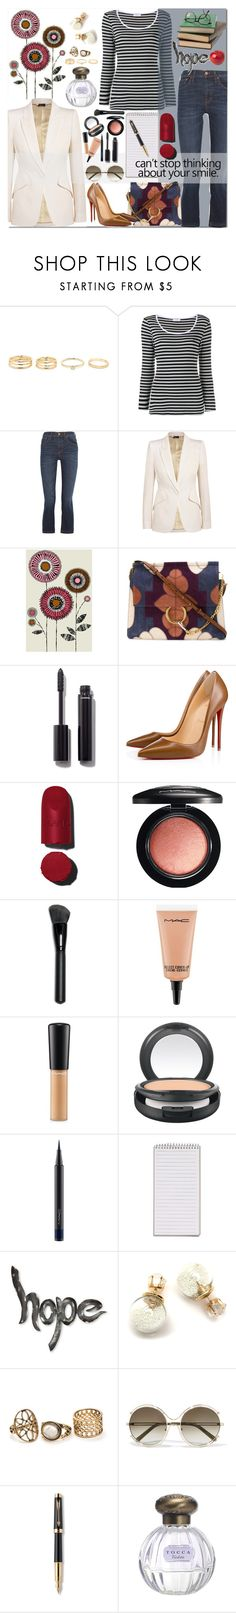 """""""Your Smile"""" by carlagoiata ❤ liked on Polyvore featuring Frame, Madewell, Alexander McQueen, Chloé, Chanel, Christian Louboutin, MAC Cosmetics, NOVICA, Parker and Tocca"""